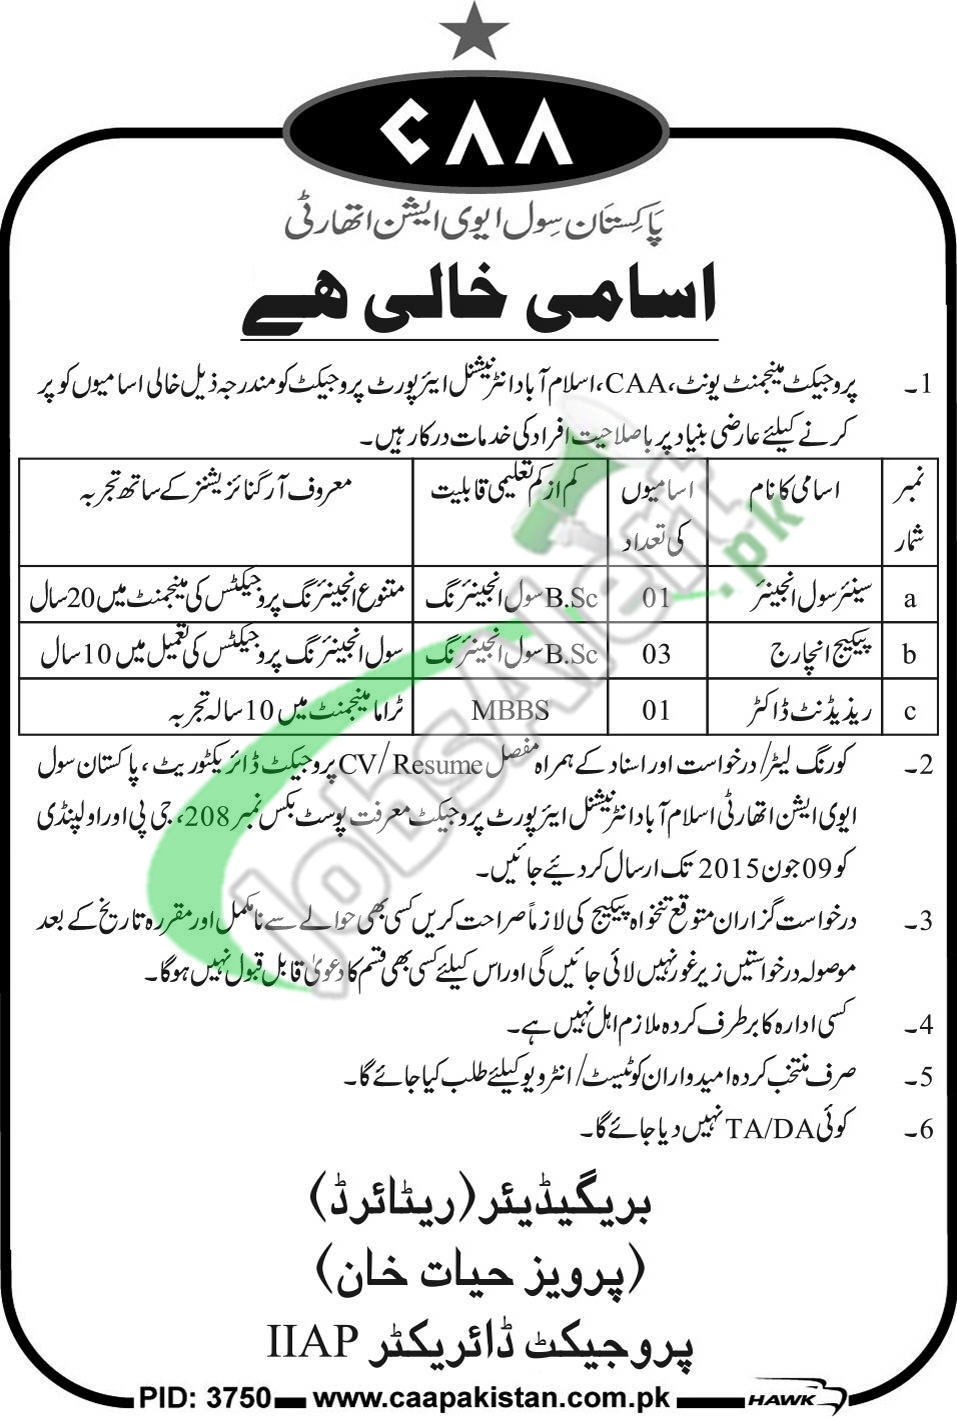 Civil Aviation Authority (CAA) Pakistan Jobs 2015 Islamabad